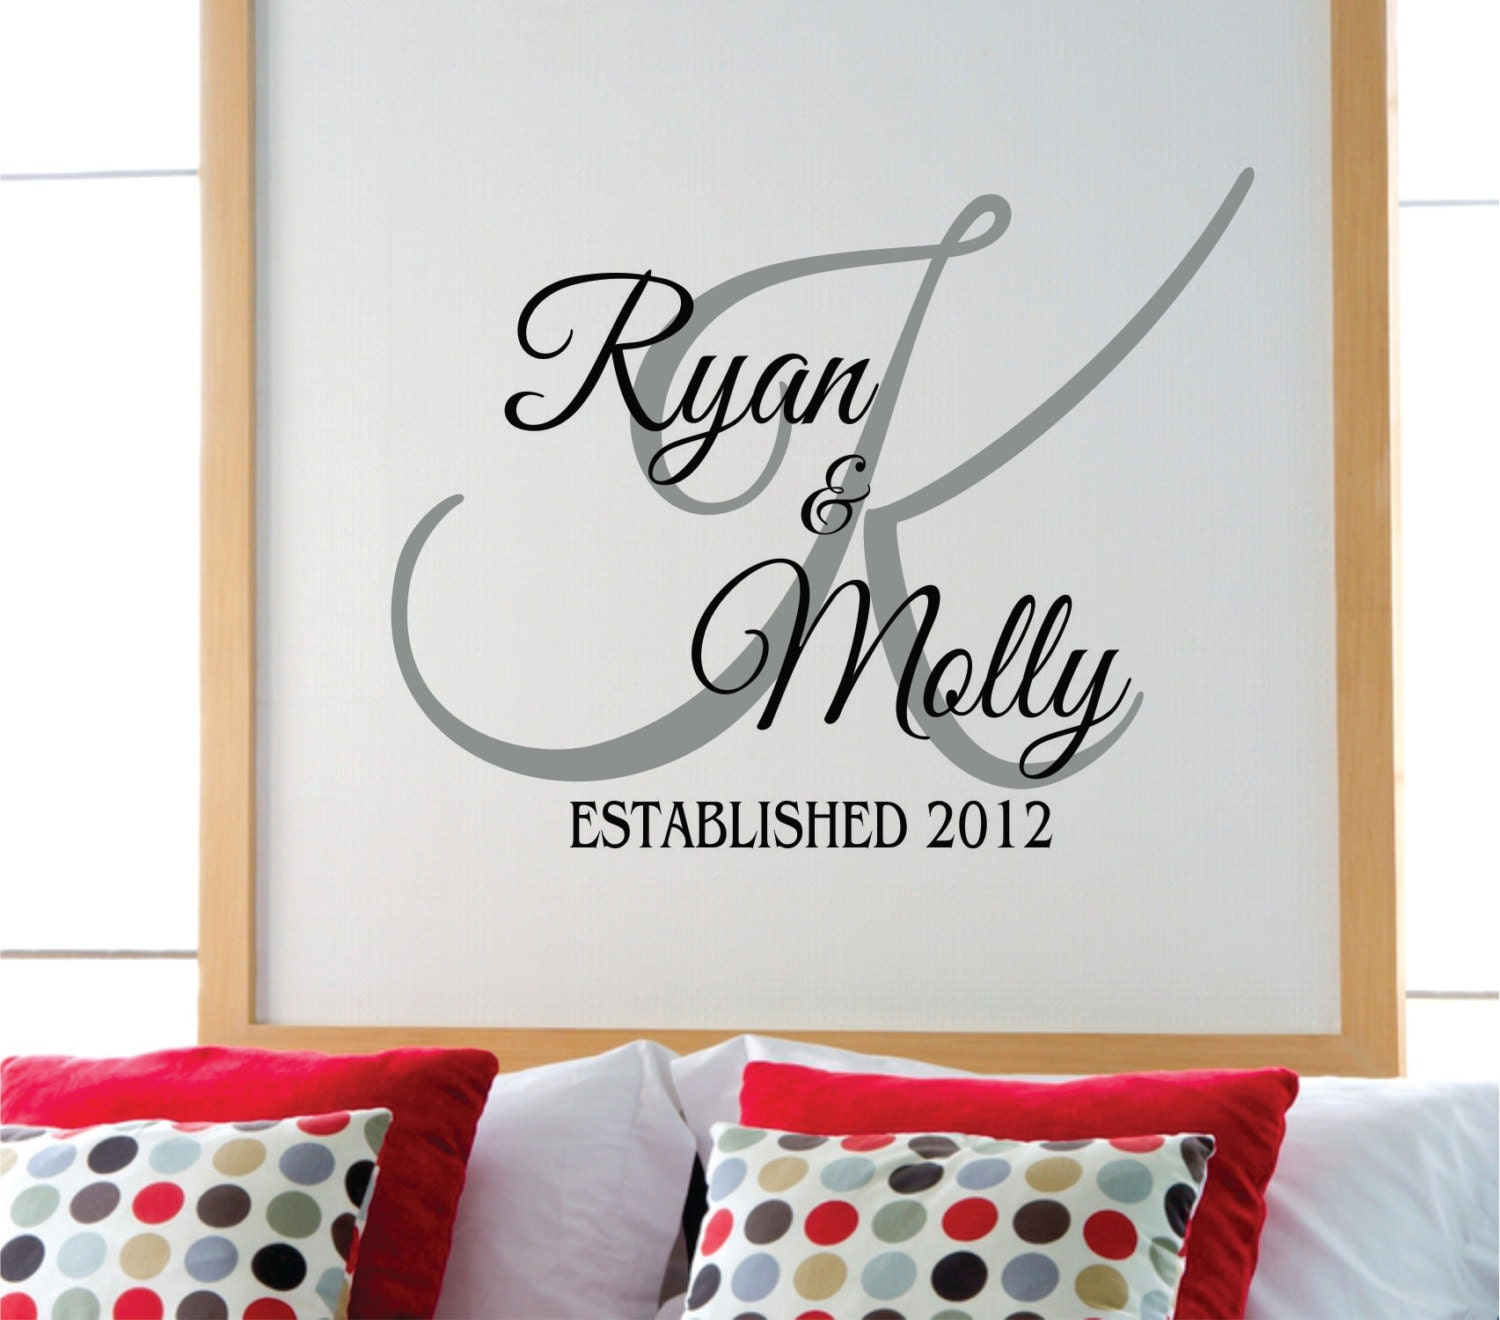 personalized family name wall decal name wall decal. Black Bedroom Furniture Sets. Home Design Ideas